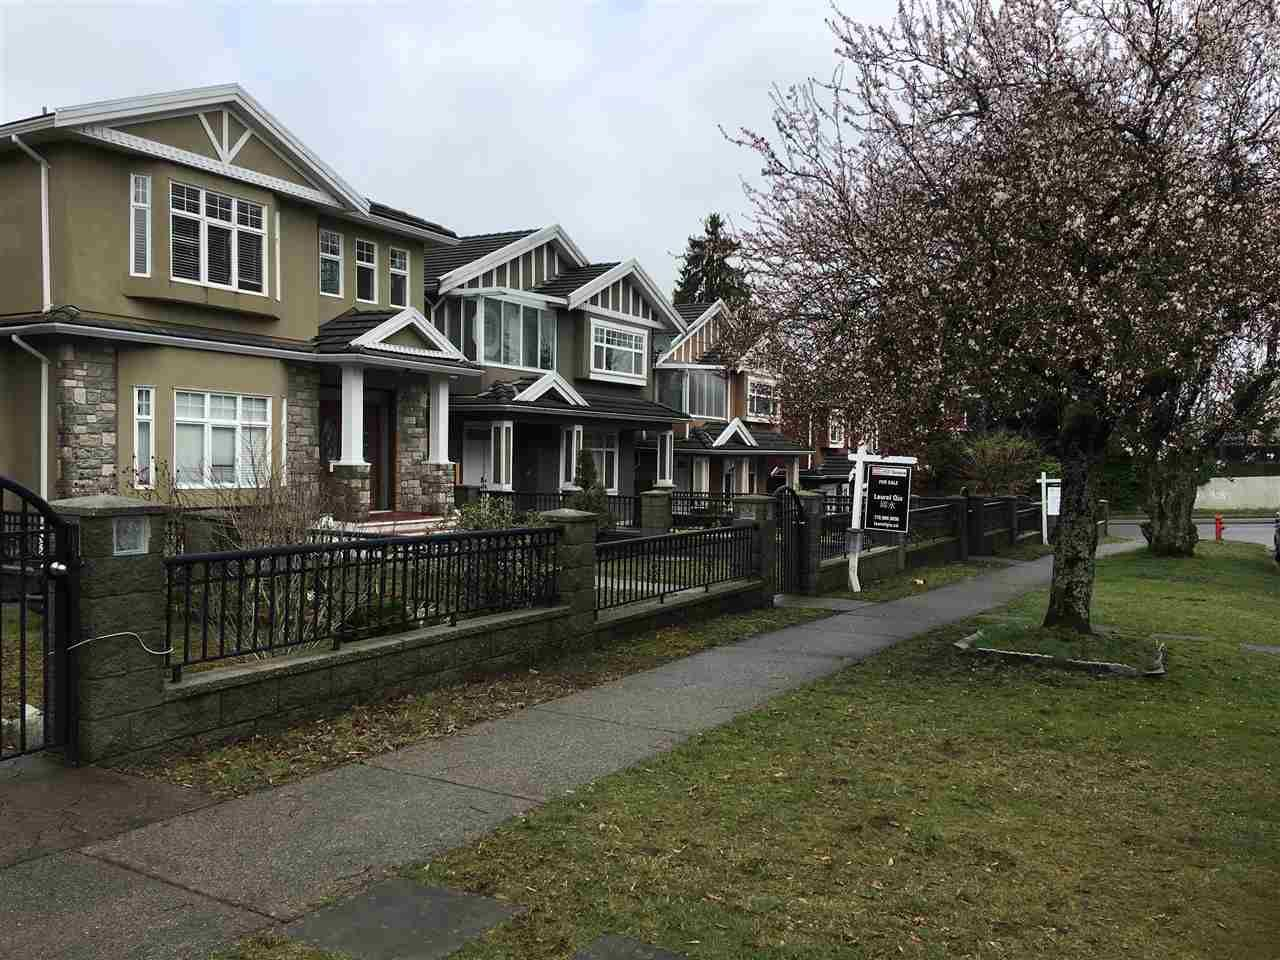 """Main Photo: 5749 CREE Street in Vancouver: Main House for sale in """"Main"""" (Vancouver East)  : MLS®# R2241377"""